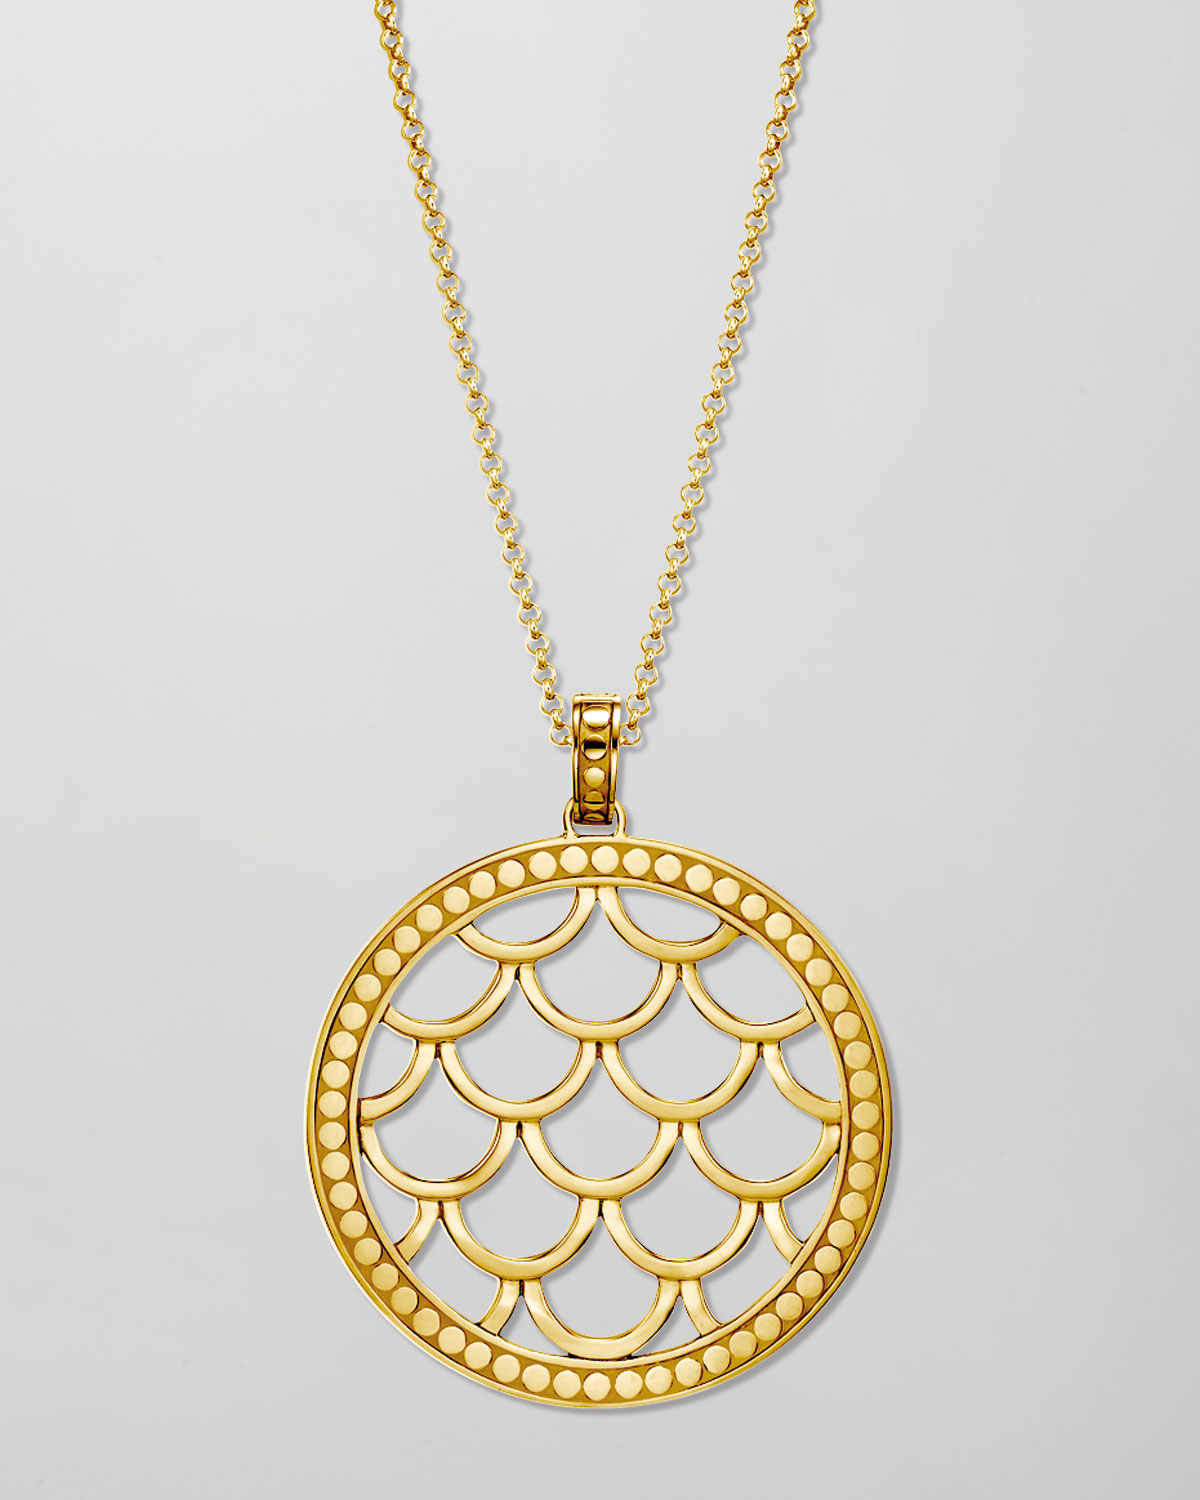 jewellery necklace am product pendant i gold blank online open